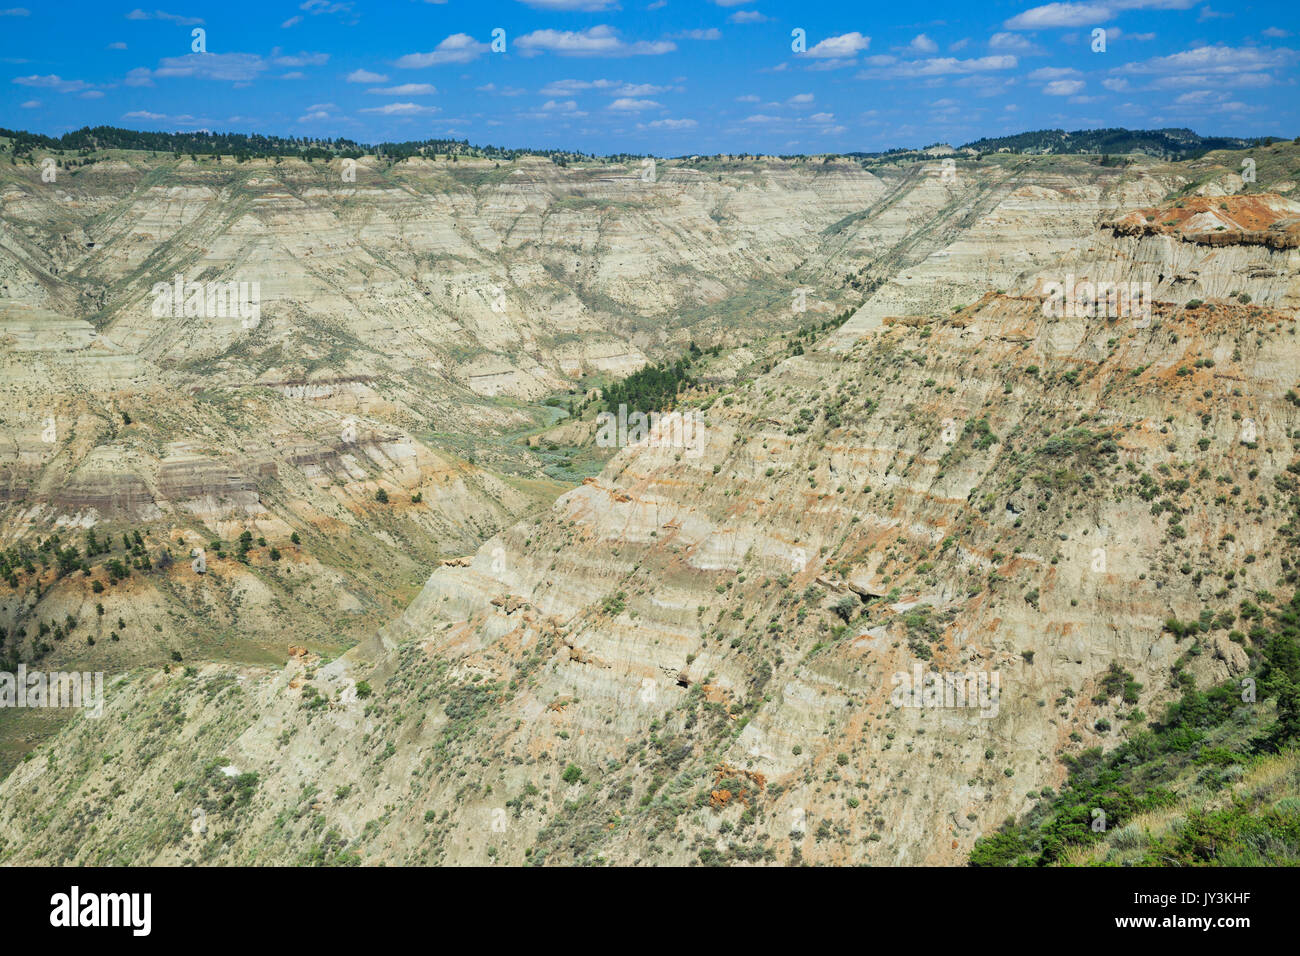 badlands in the upper missouri river breaks national monument near winifred, montana - Stock Image